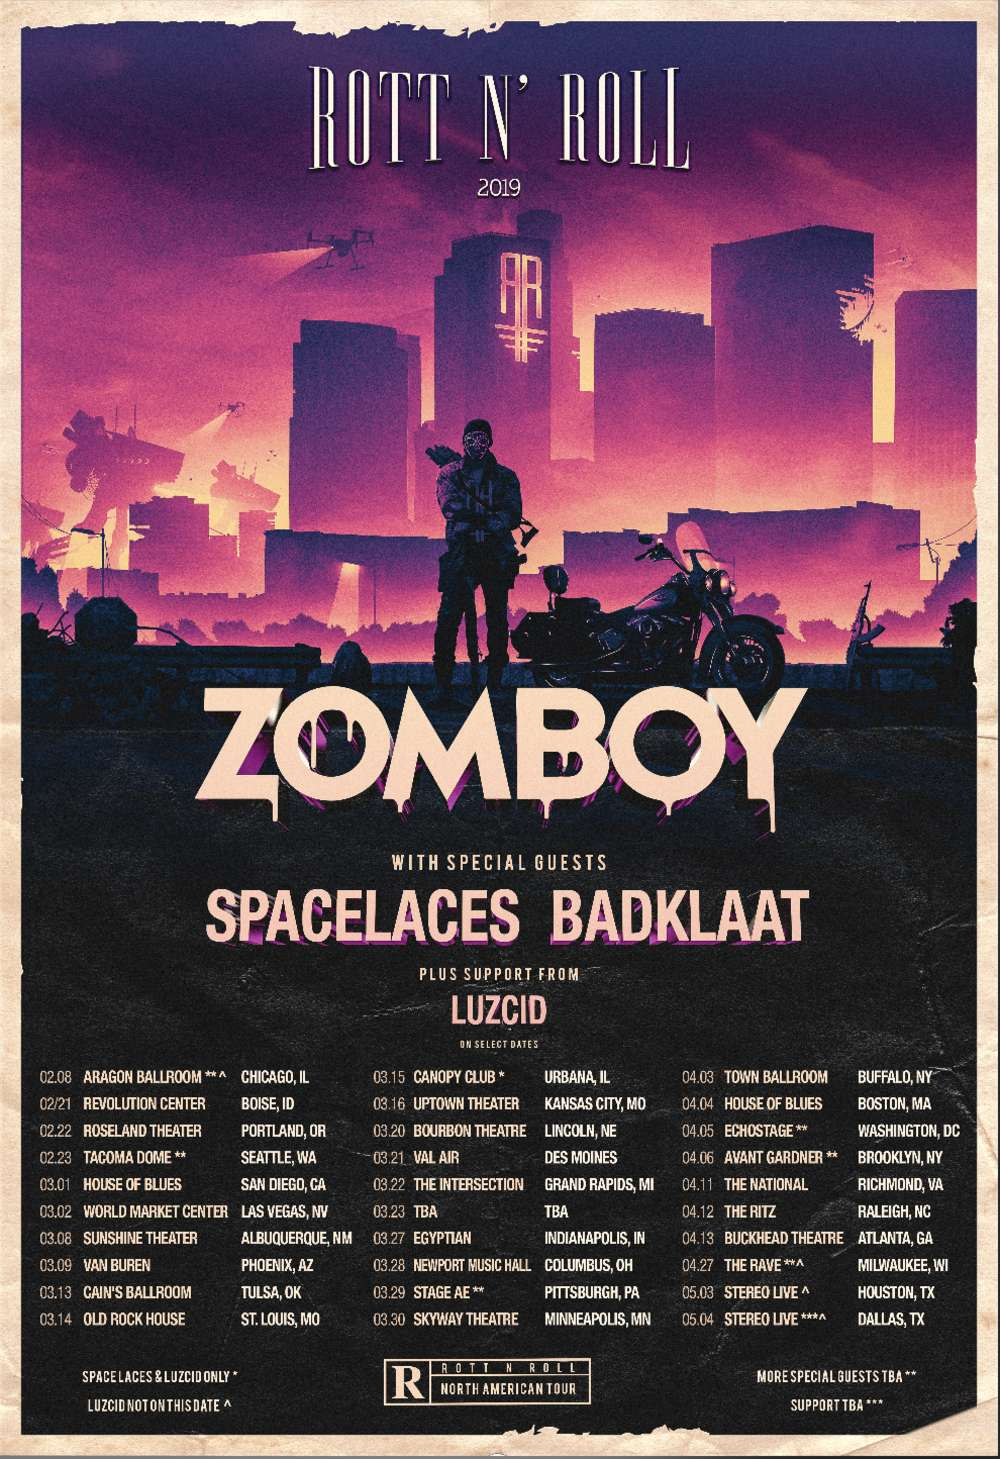 TICKET GIVEAWAY - CHICAGO